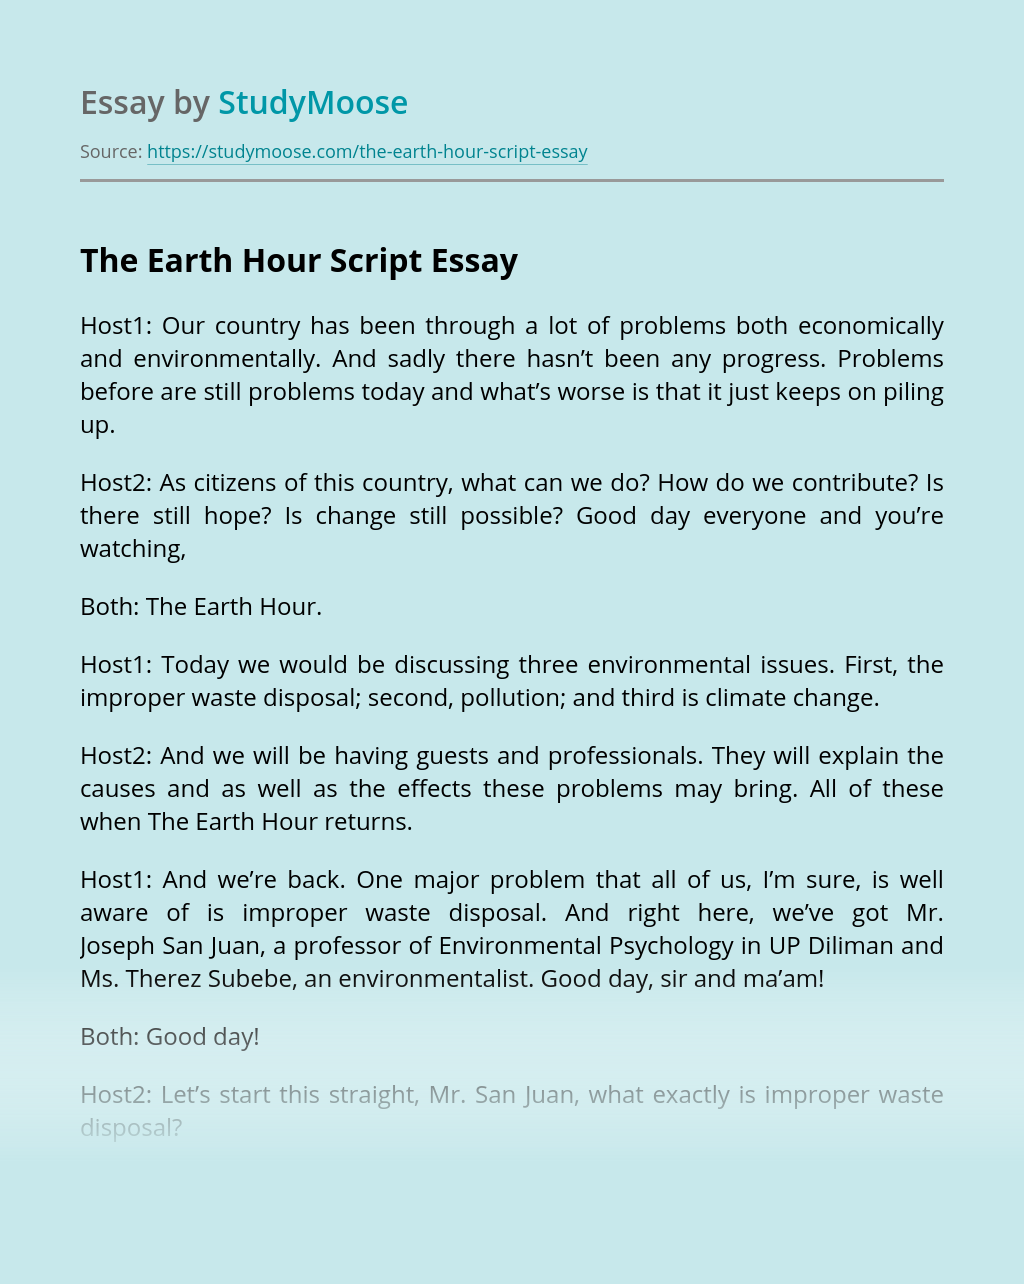 The Earth Hour Script